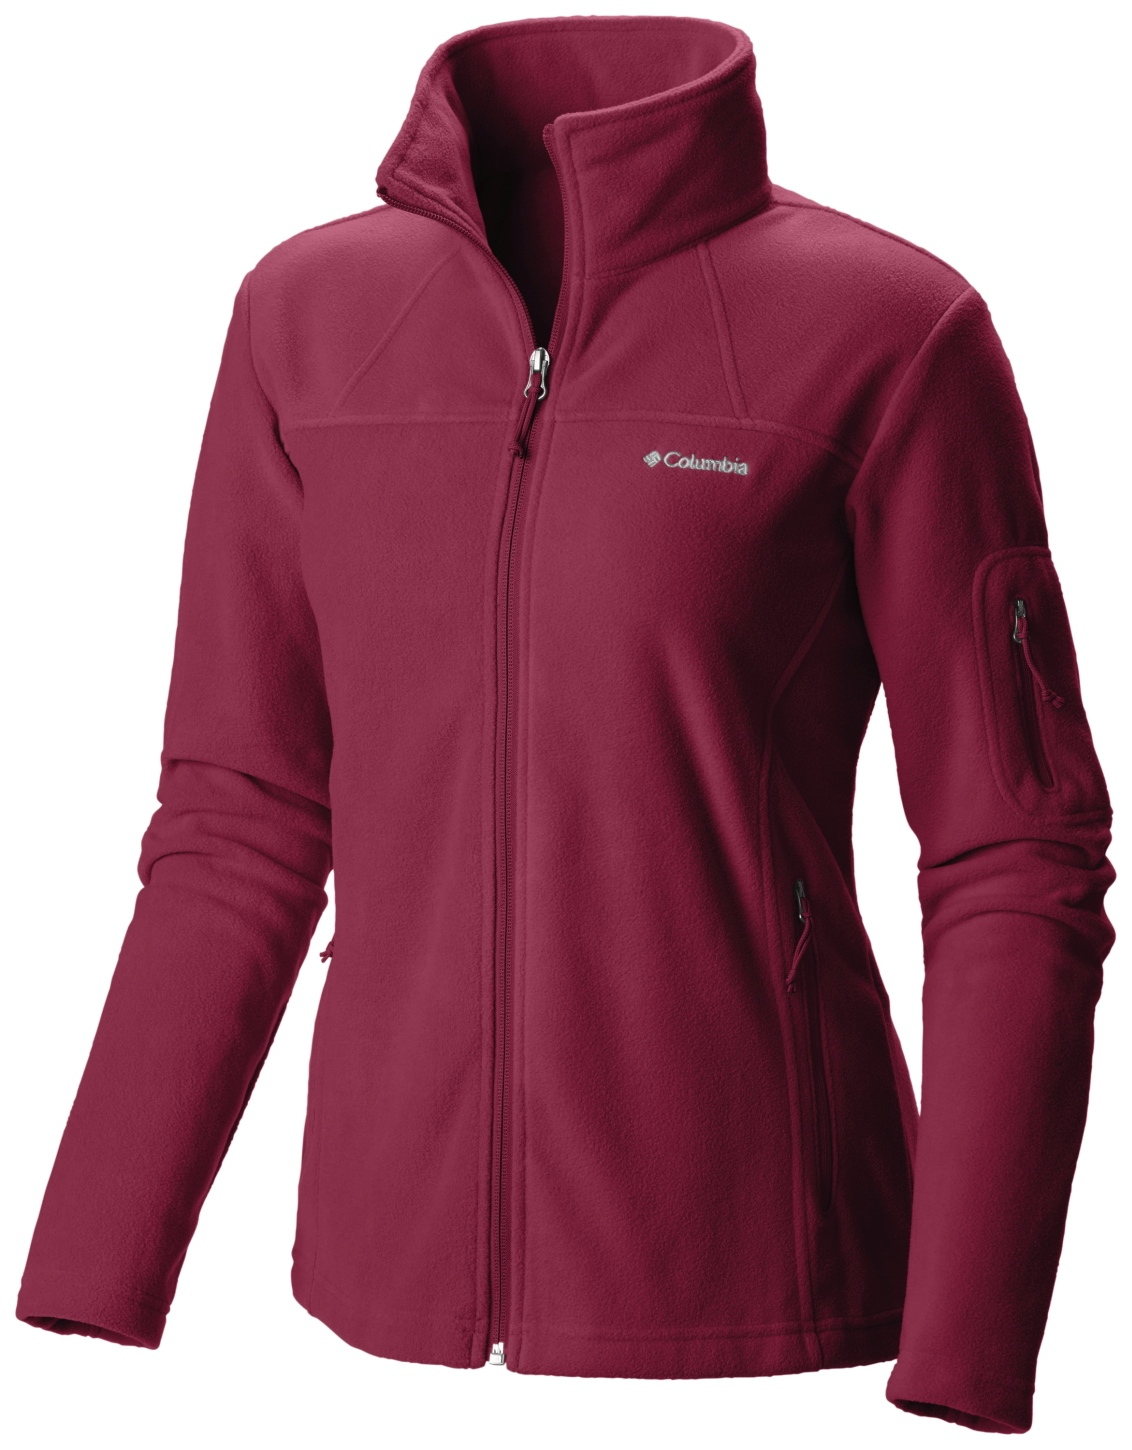 Columbia Women's Fast Trek II Jacket Red Orchid-30